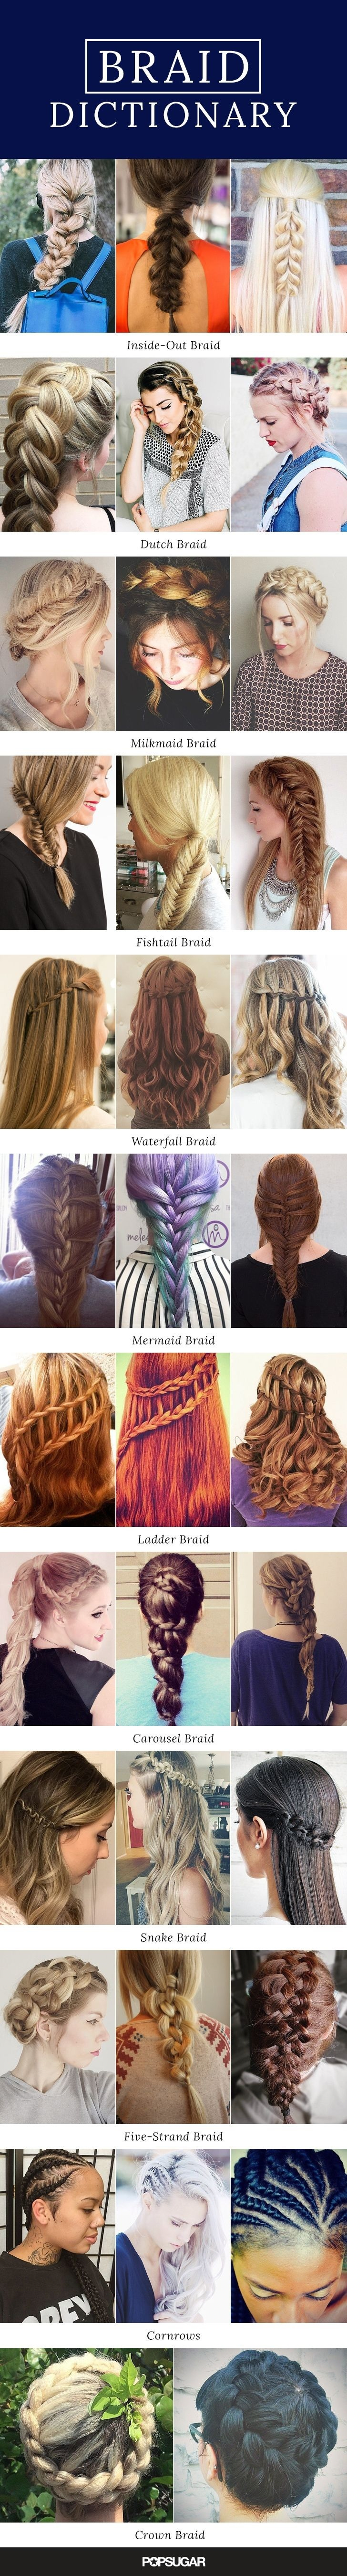 10 Beautiful hairstyles with braids trend New Hairdressing